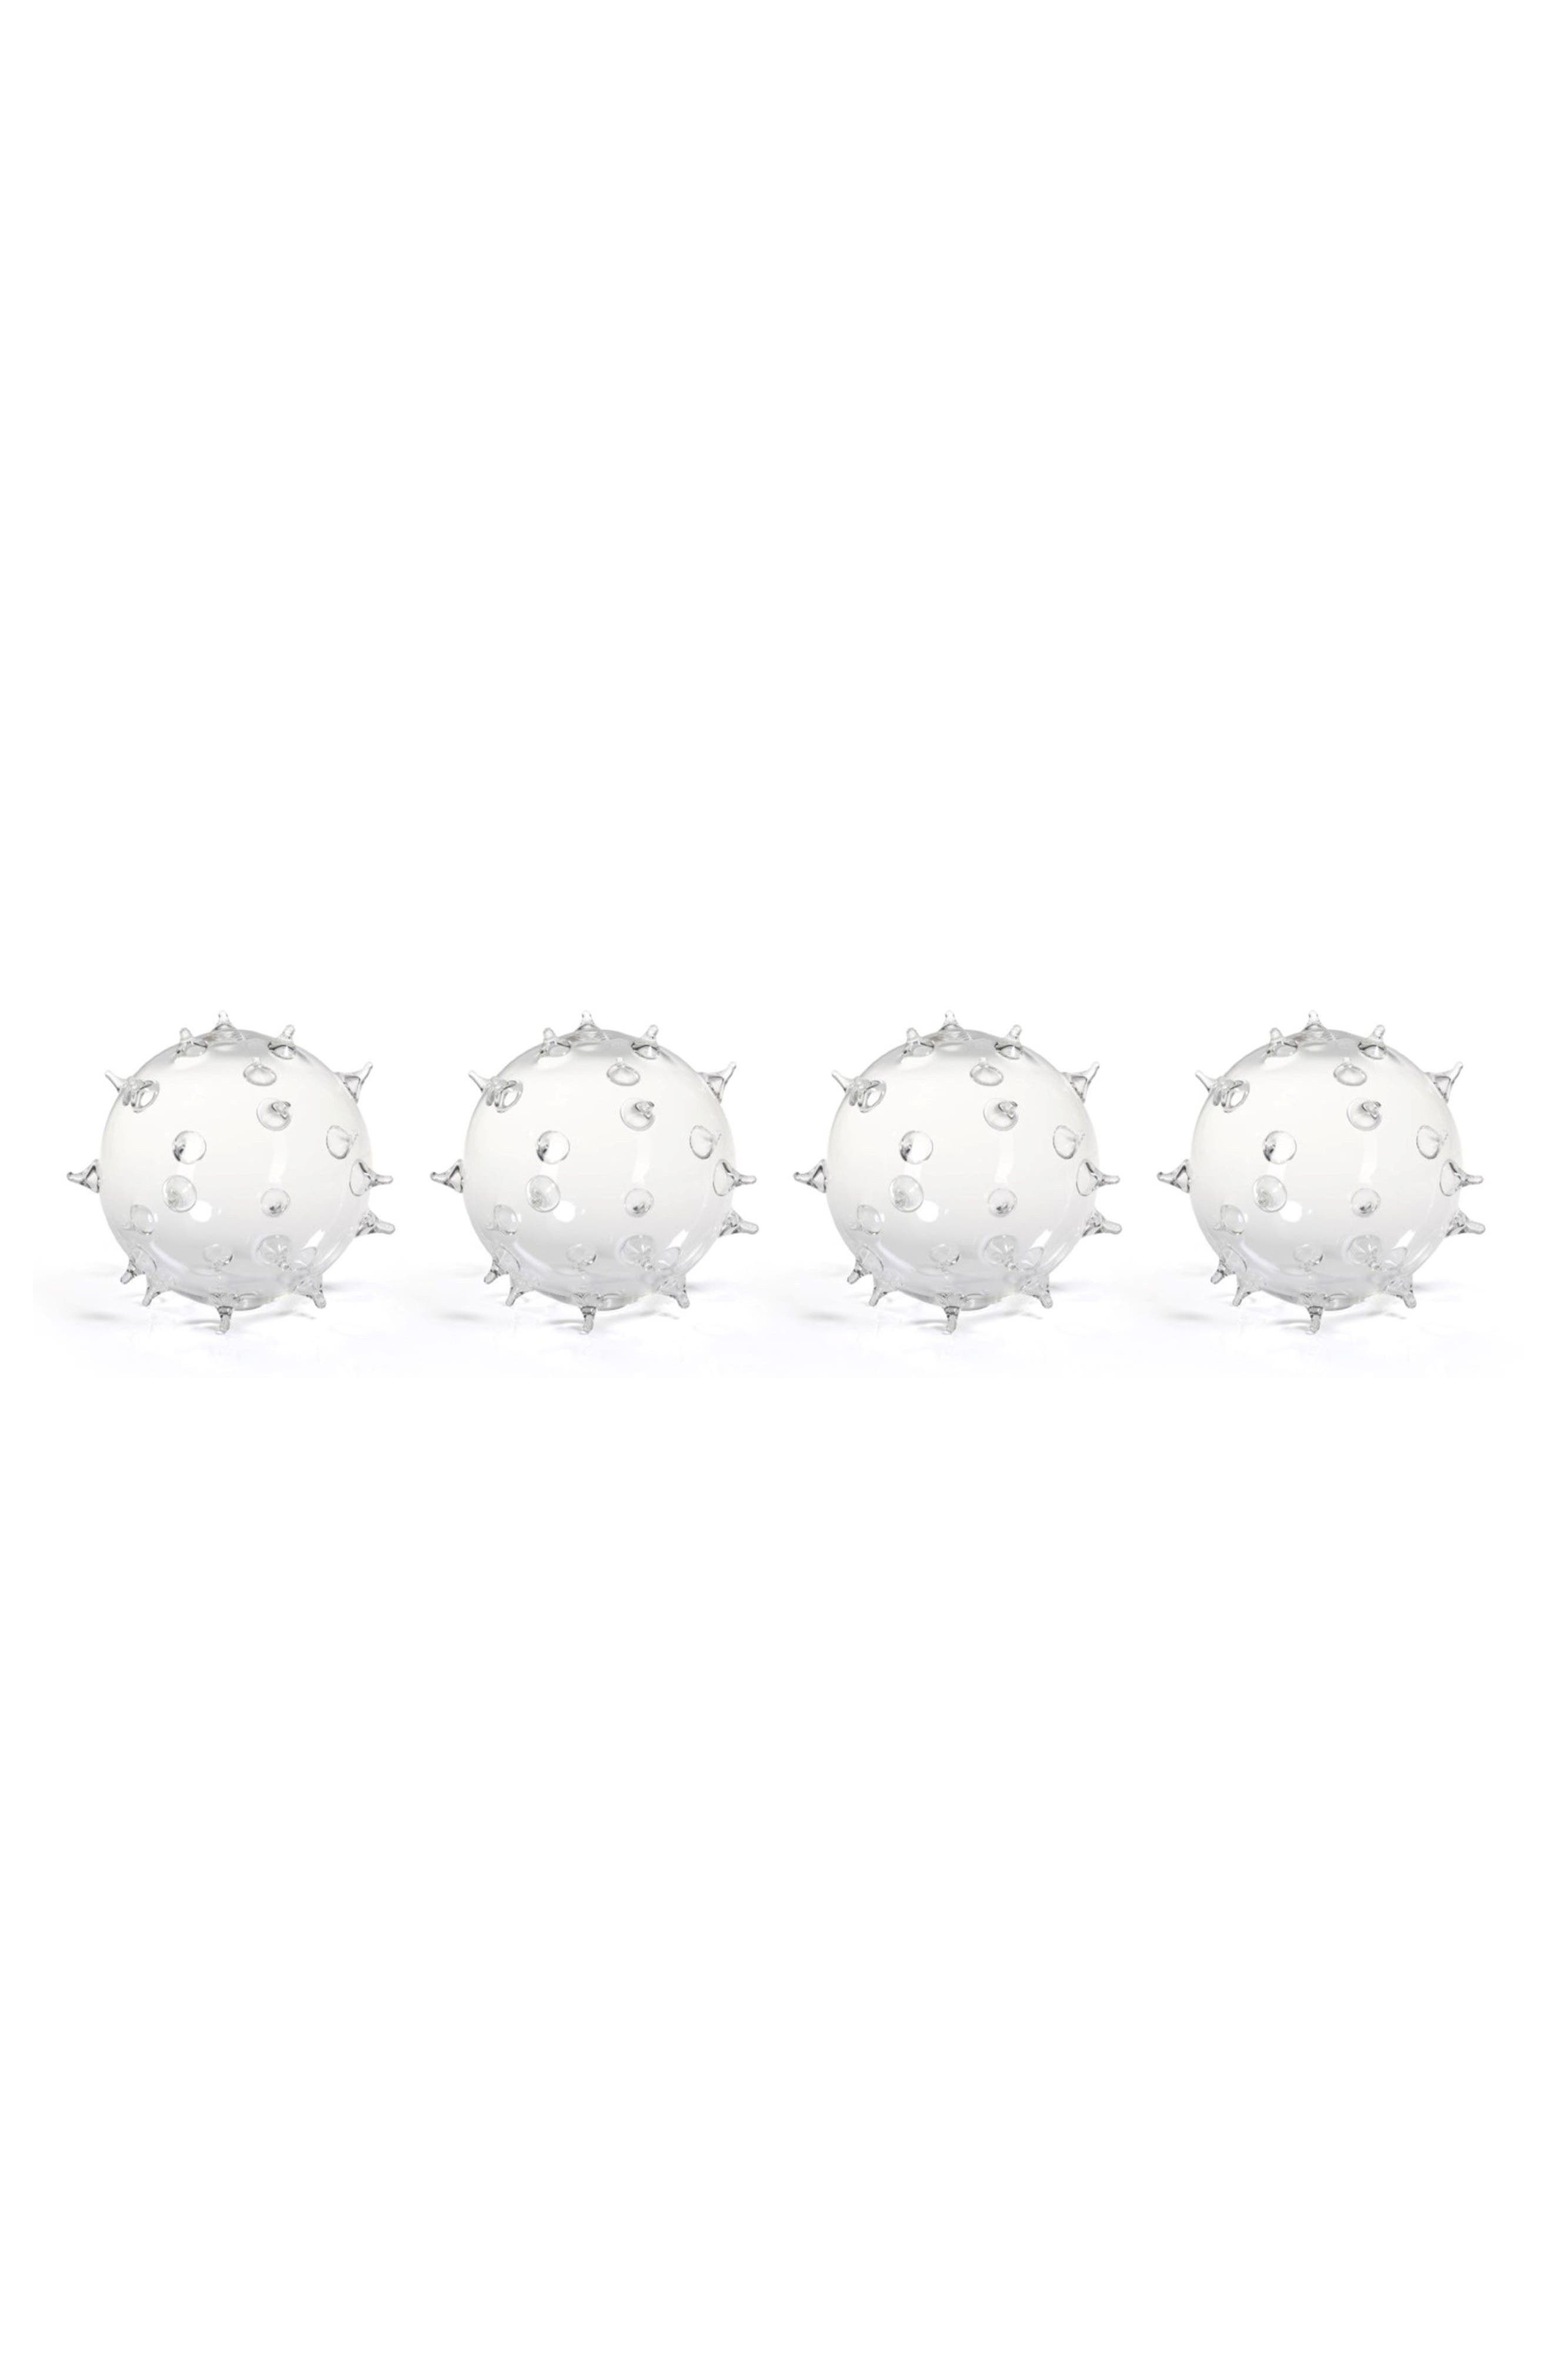 Suri Set of 4 Spiked Glass Vases,                             Main thumbnail 1, color,                             100